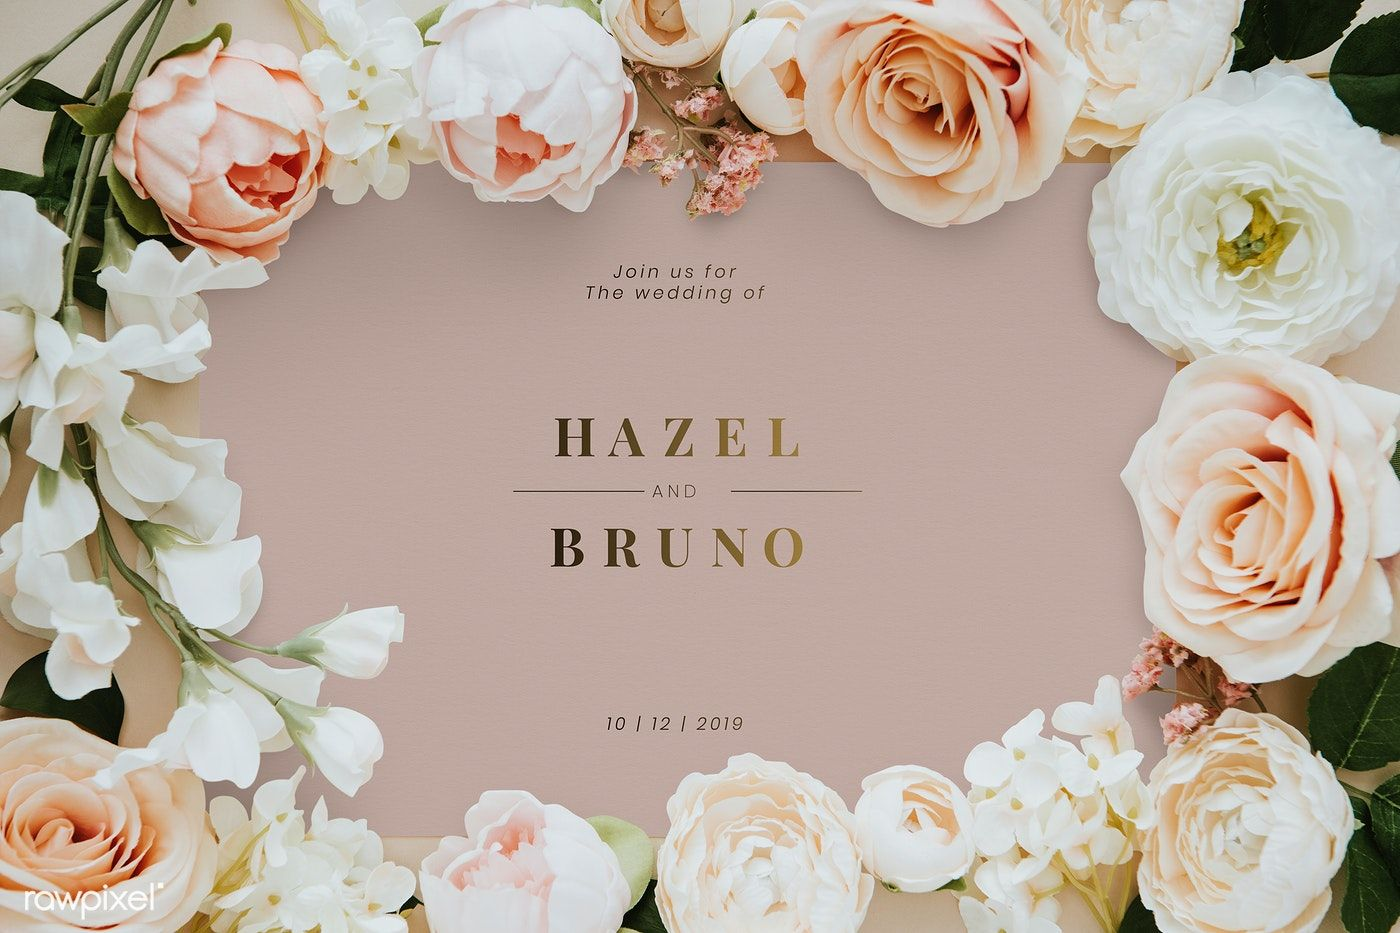 Download premium psd of Botanical wedding invitation card